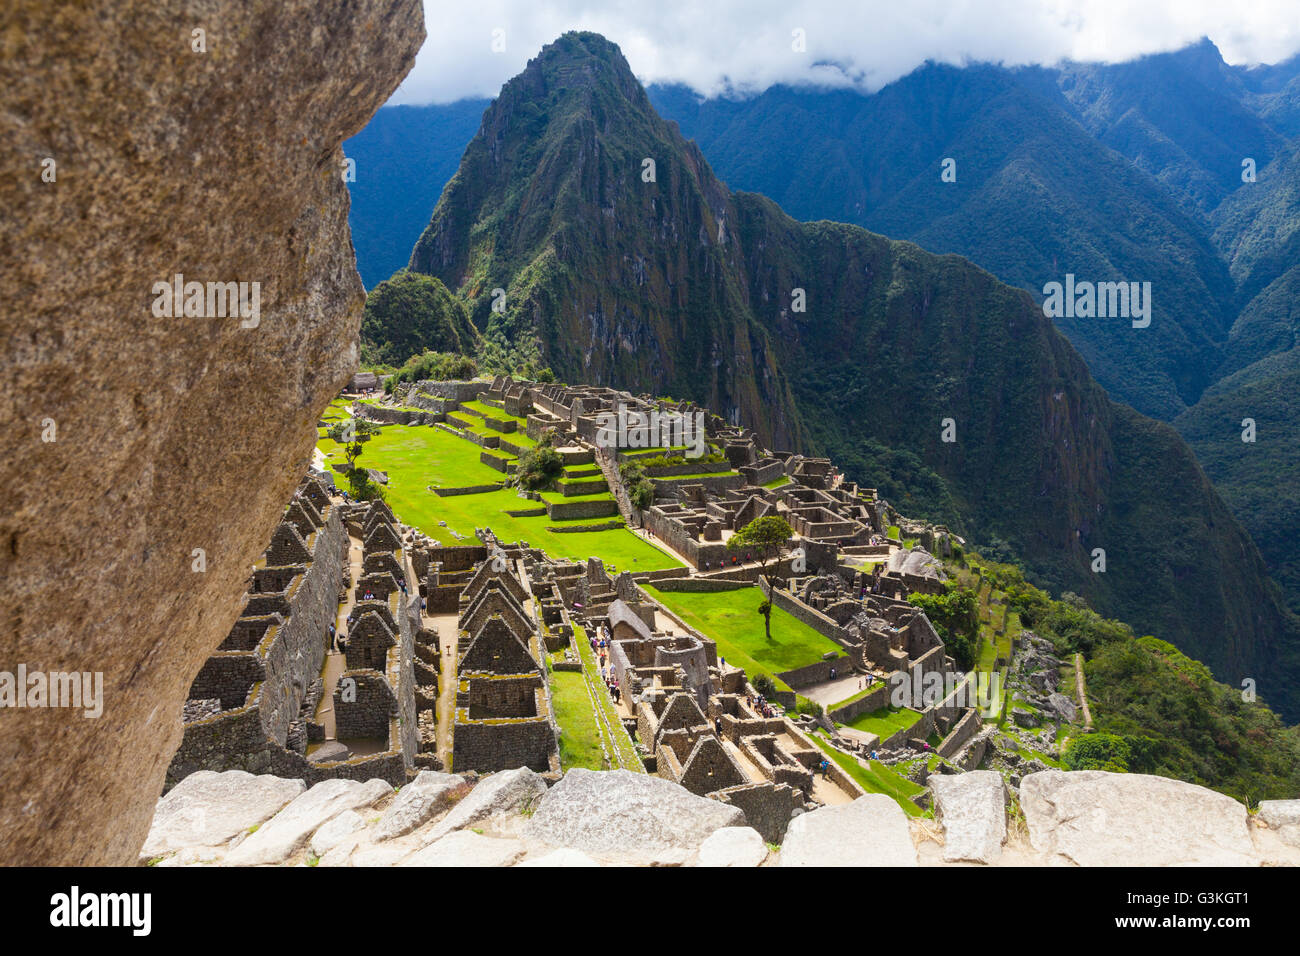 Overview of the Machu Picchu settlement in the Andes Mountains of Peru - Stock Image